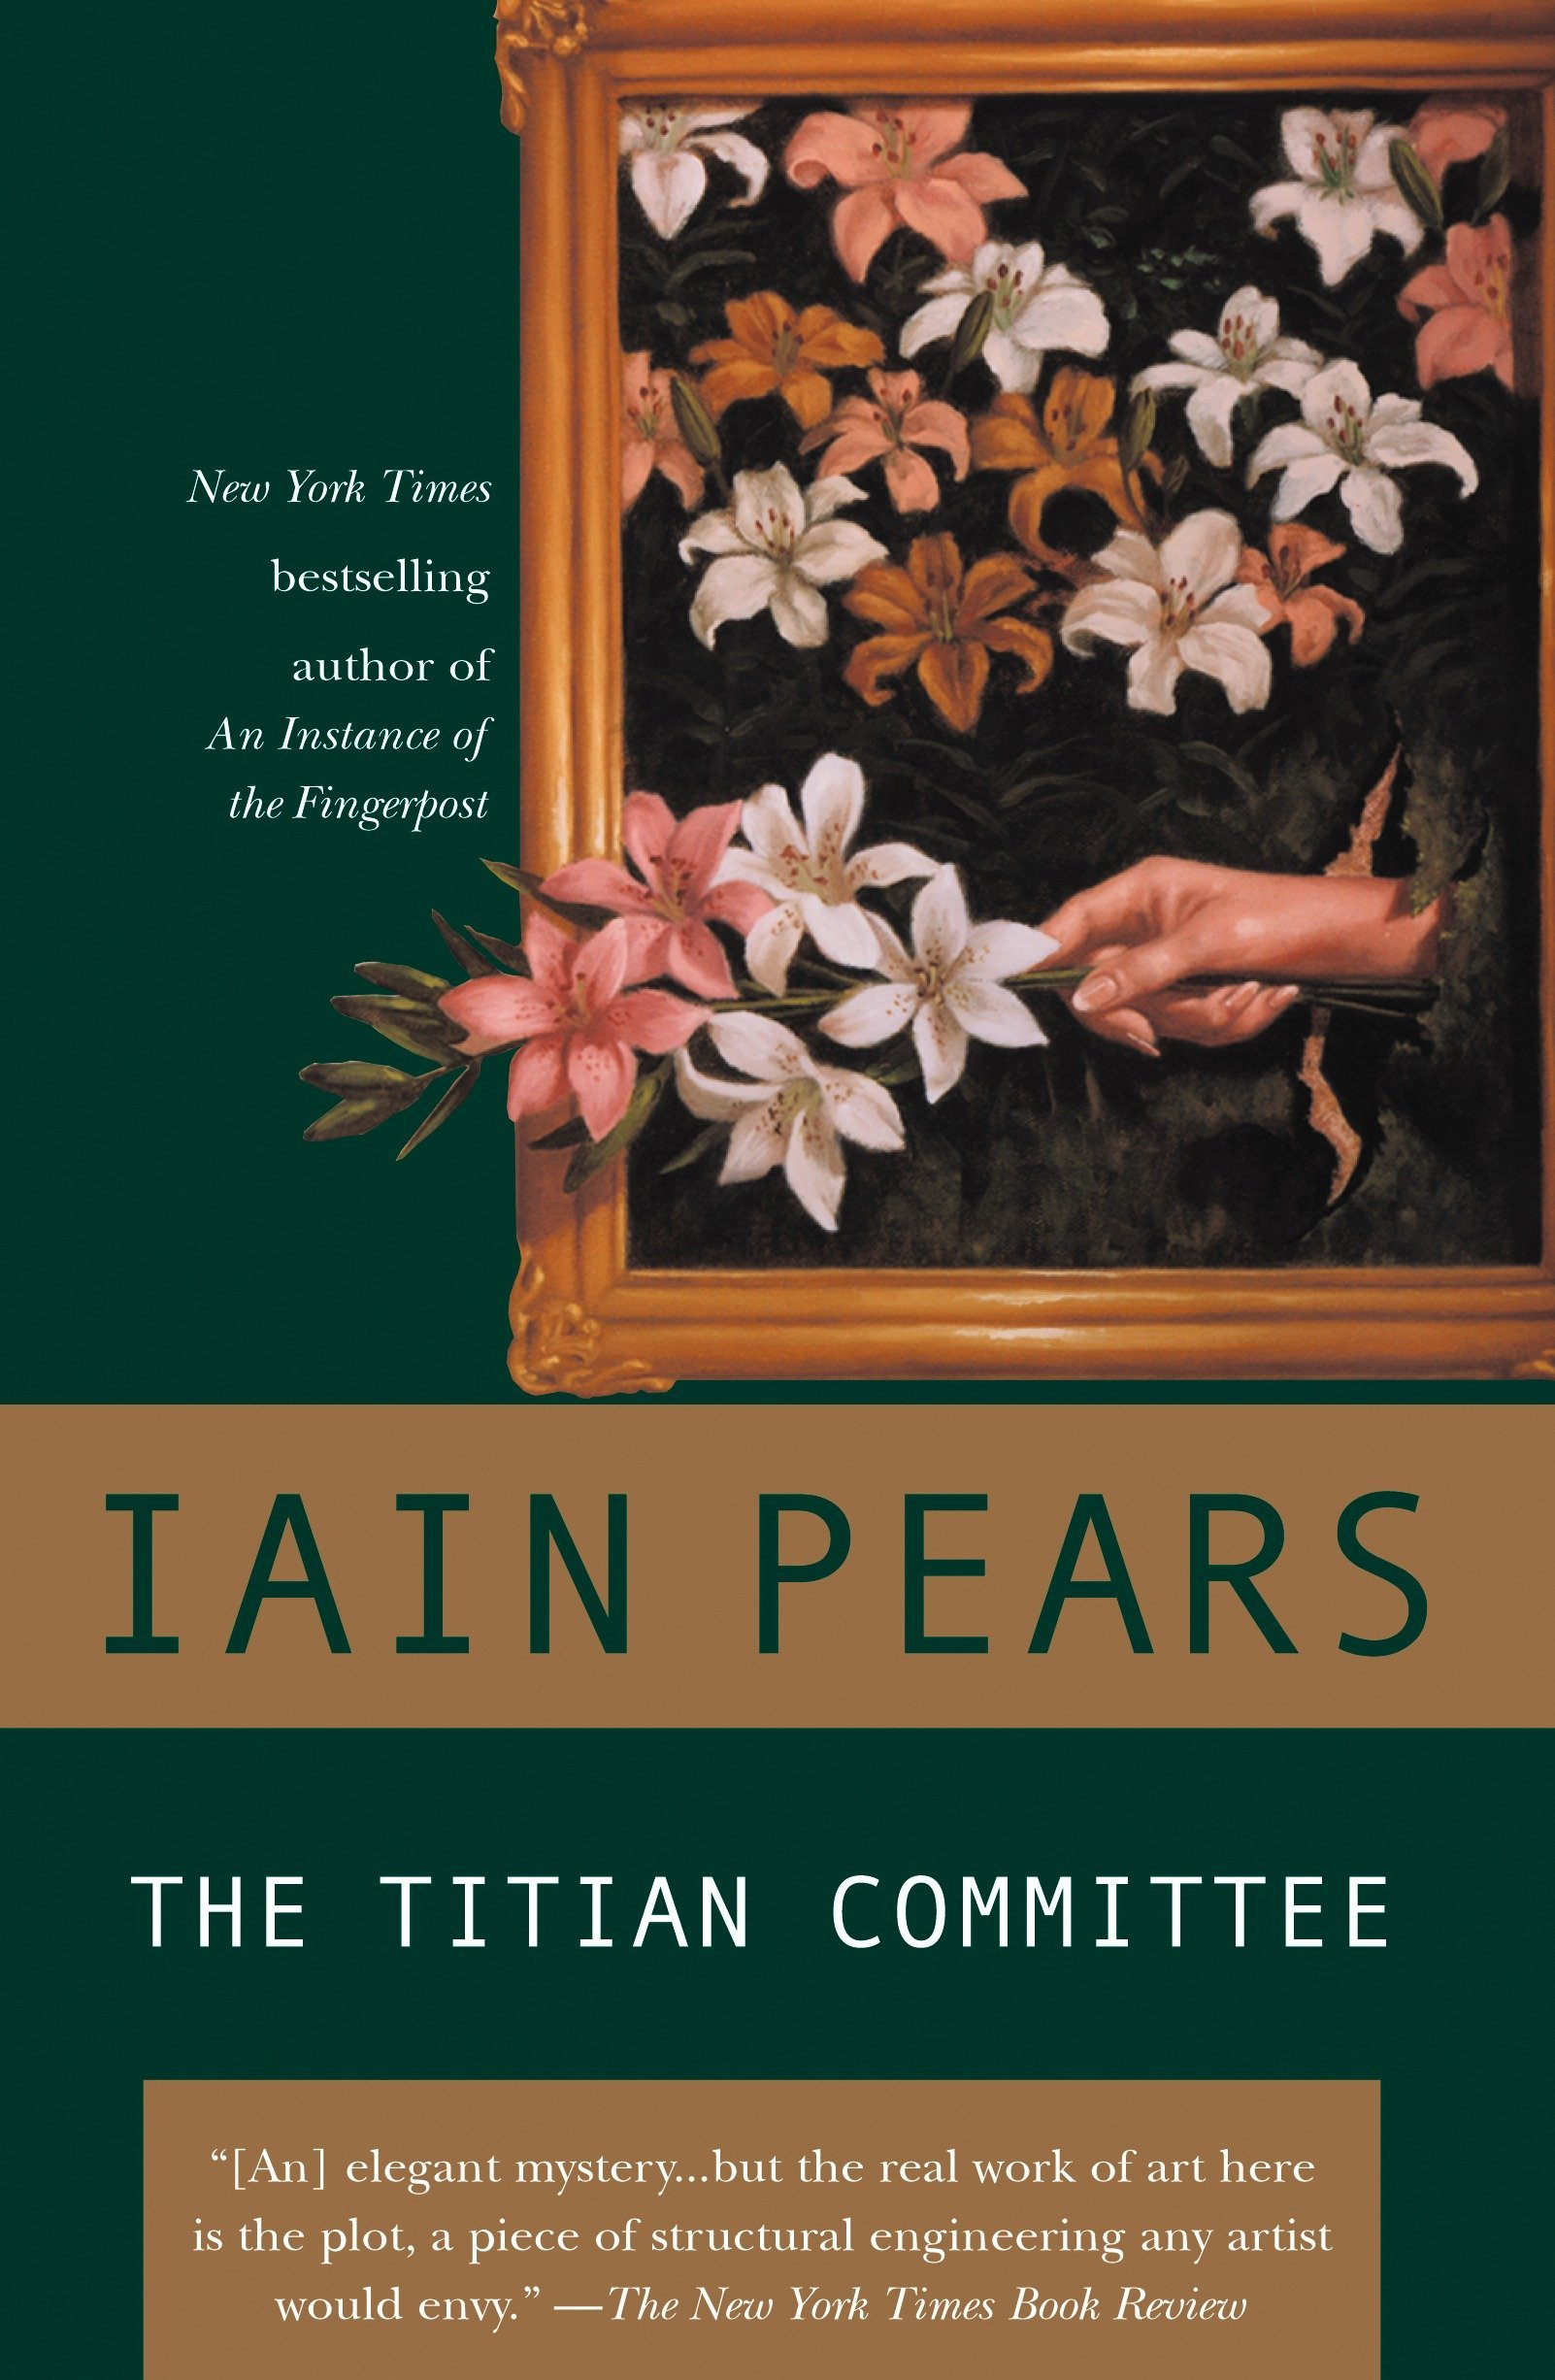 Amazon.com: The Titian Committee (Art History Mystery) (0071831015006): Iain  Pears: Books